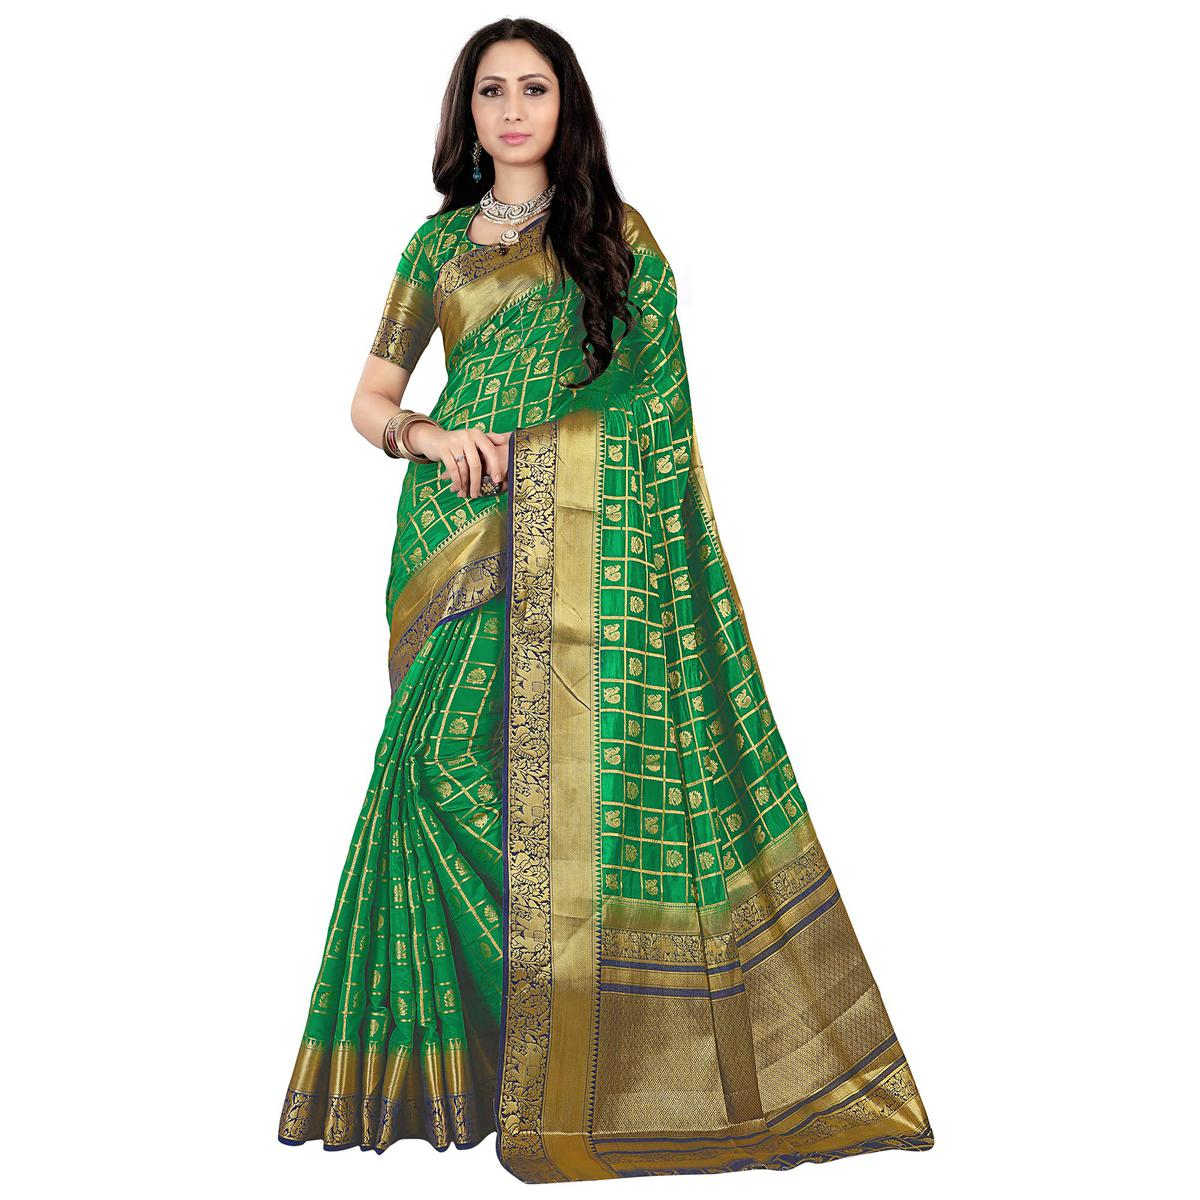 Starring Green Colored Patola Style Woven Silk Saree